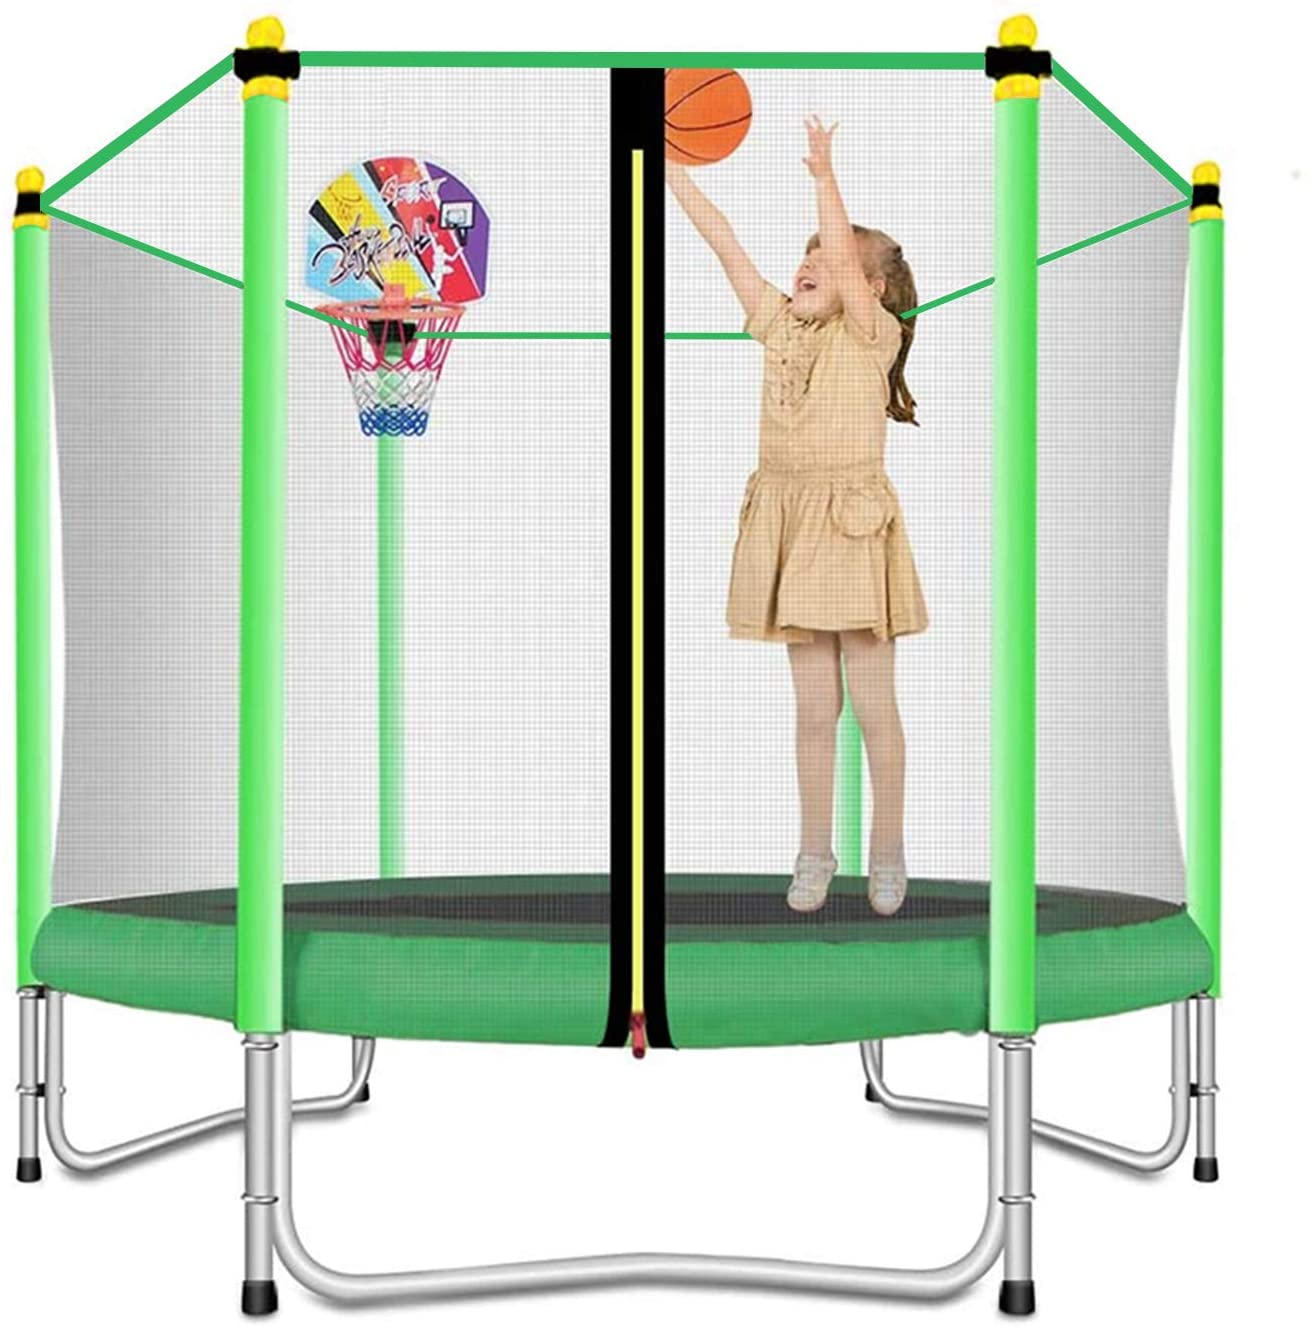 Lovely Snail Trampoline with Basketball Hoop